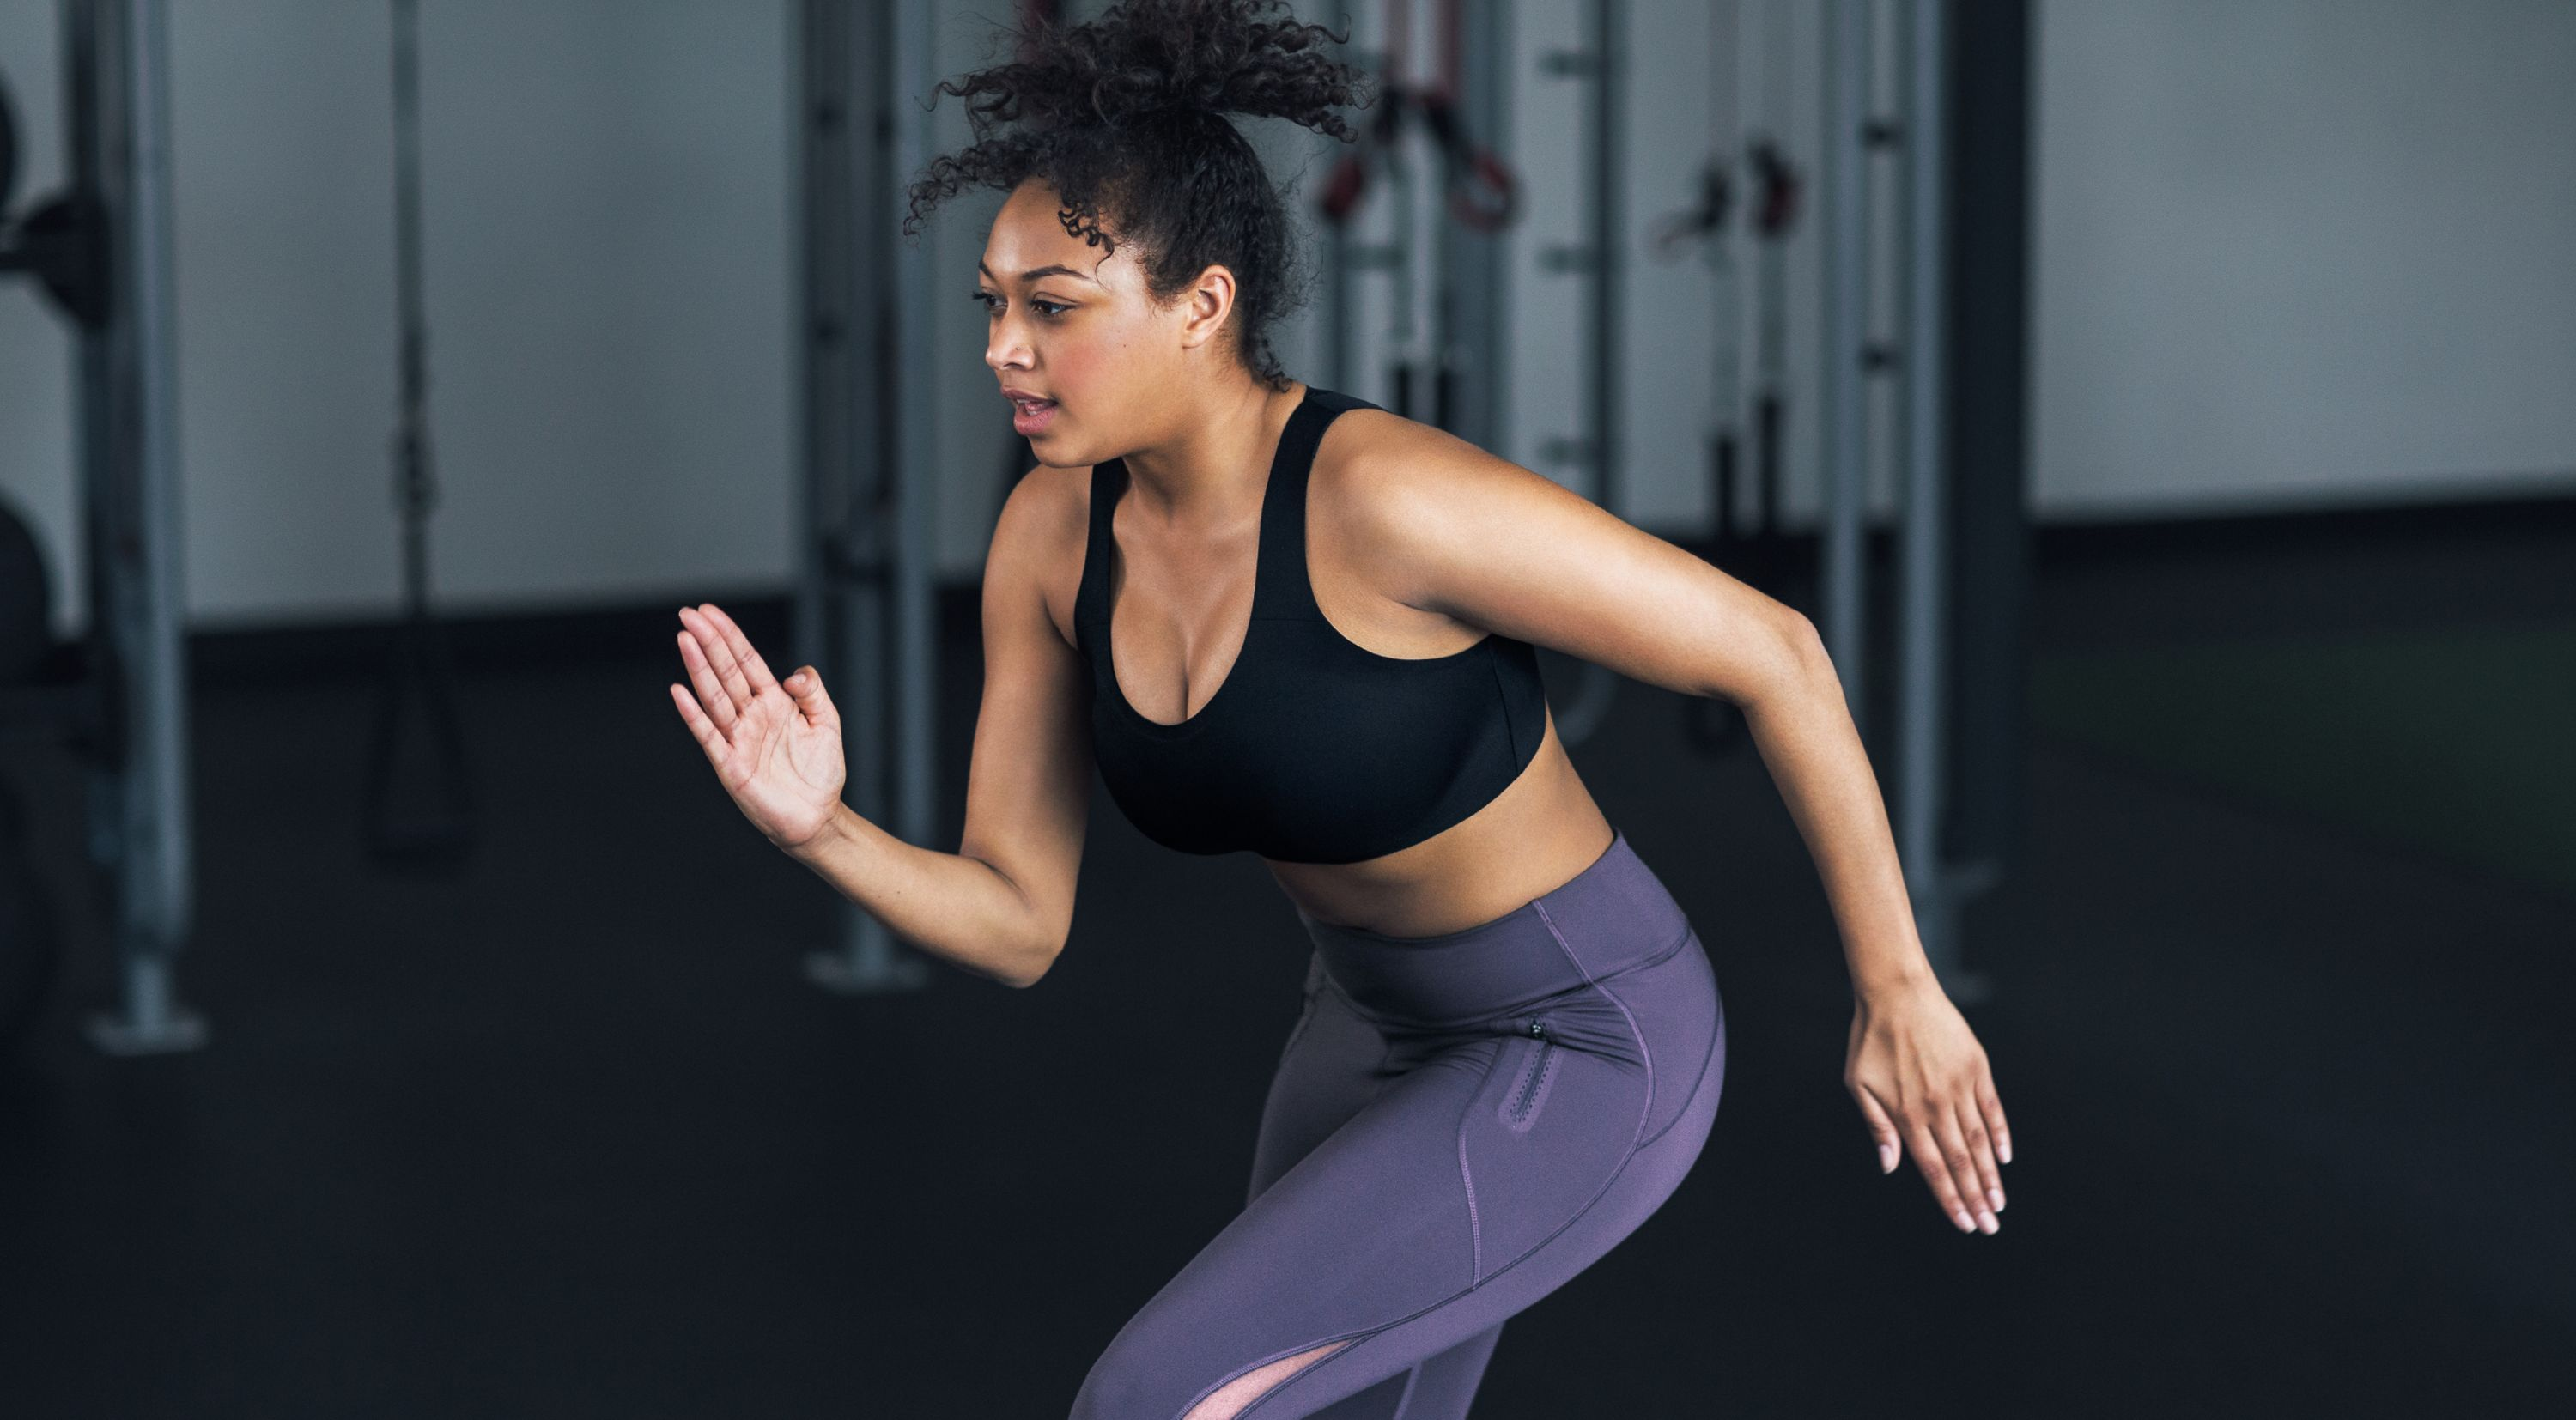 The Enlite Bra: Movement, Managed